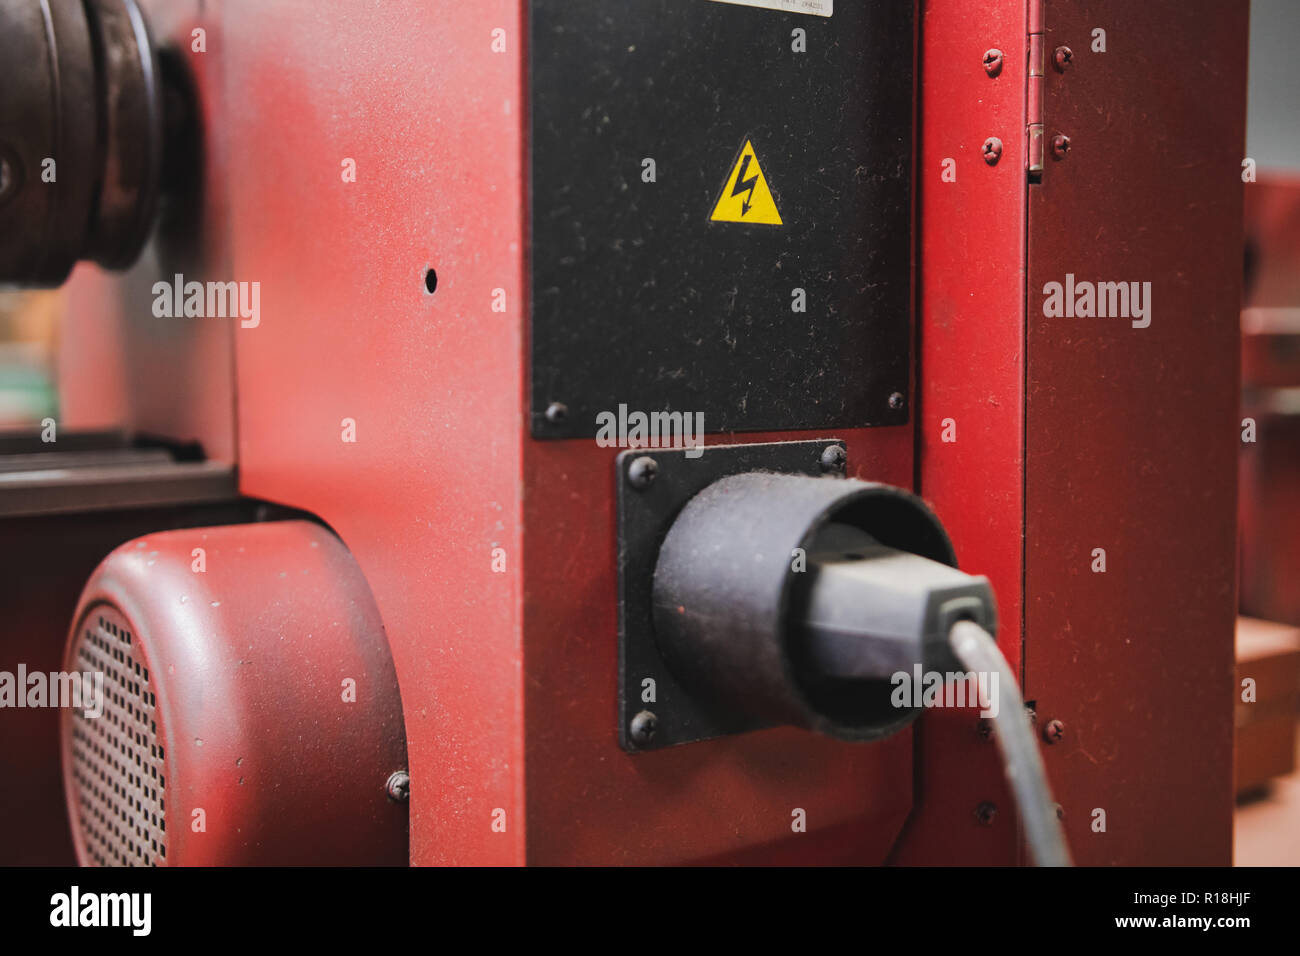 High voltage warning sticker at the back of a power tool in workshop - Stock Image